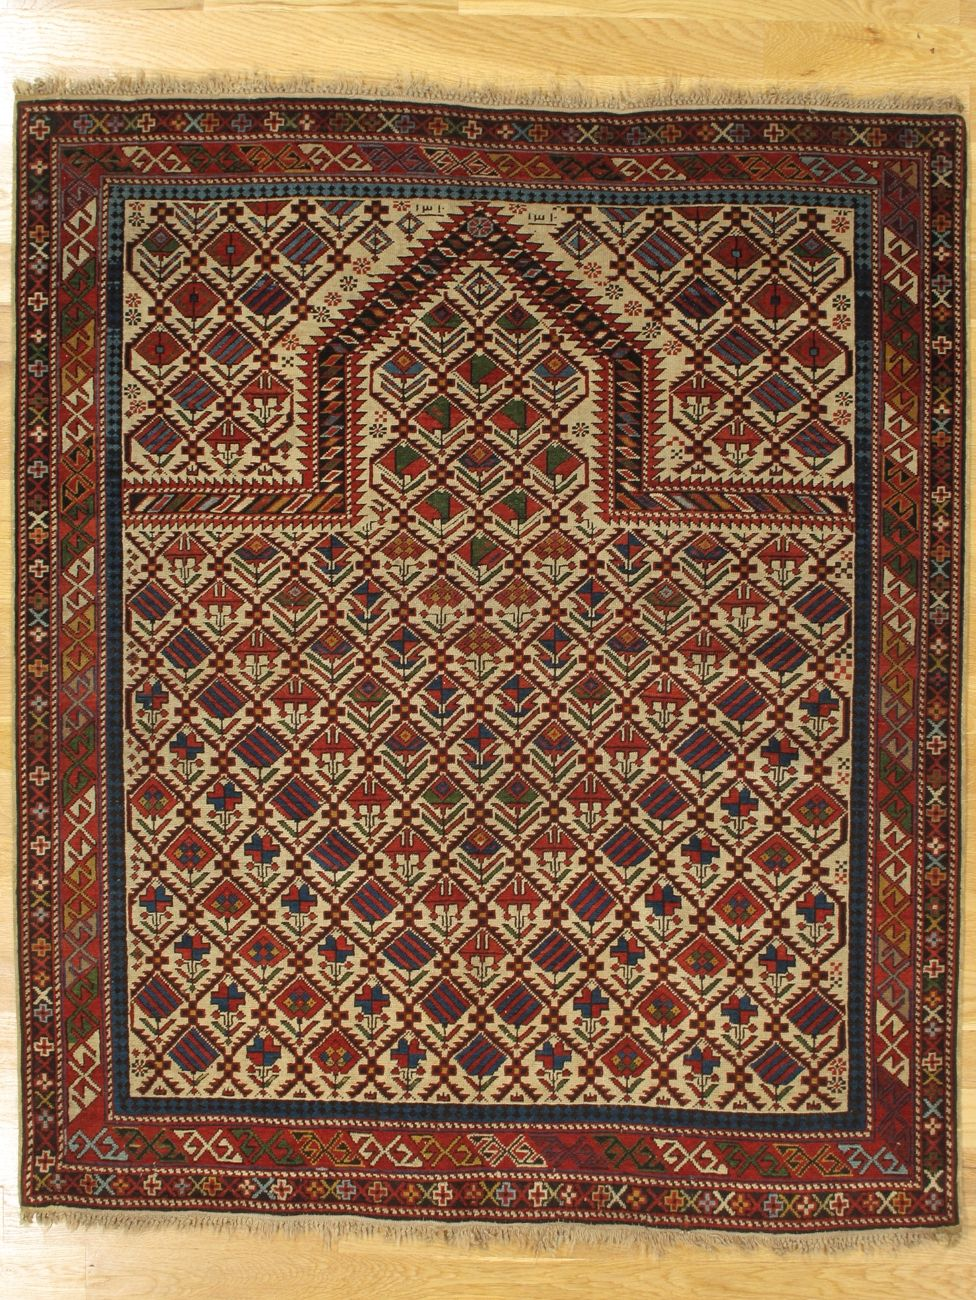 Shirvan Prayer Rug From Eastern Caucasus West Coast Of The Caspian Sea Age Dated 1310 1892 Size 5 2 X4 4 157x132 Cm Persian Rug Rugs Rugs On Carpet